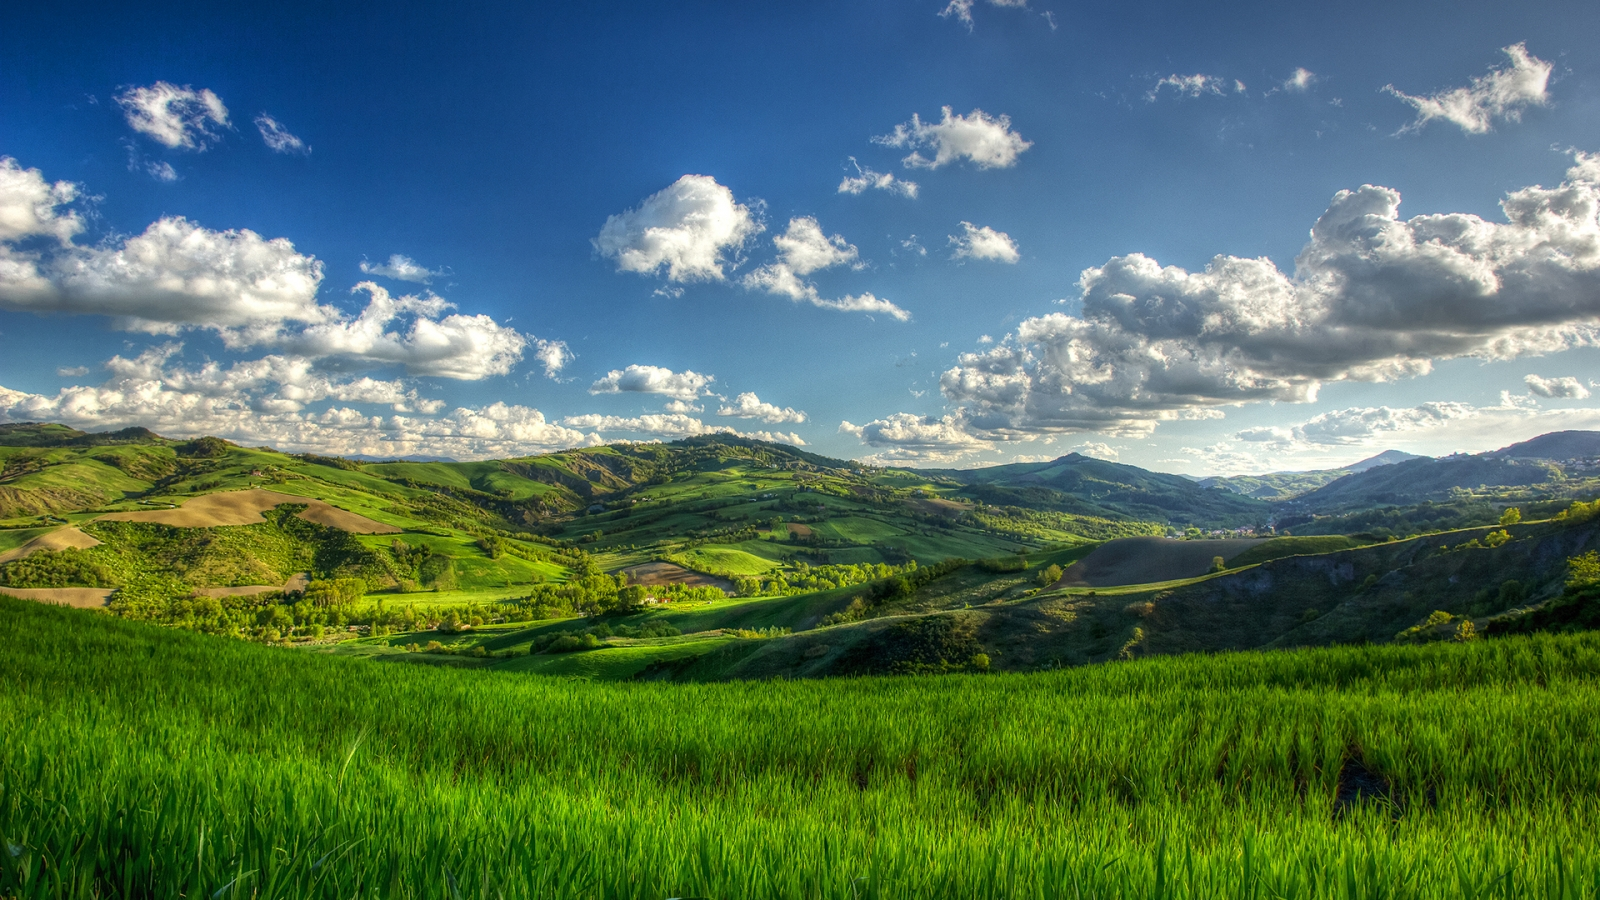 Sunny Green Hills for 1600 x 900 HDTV resolution